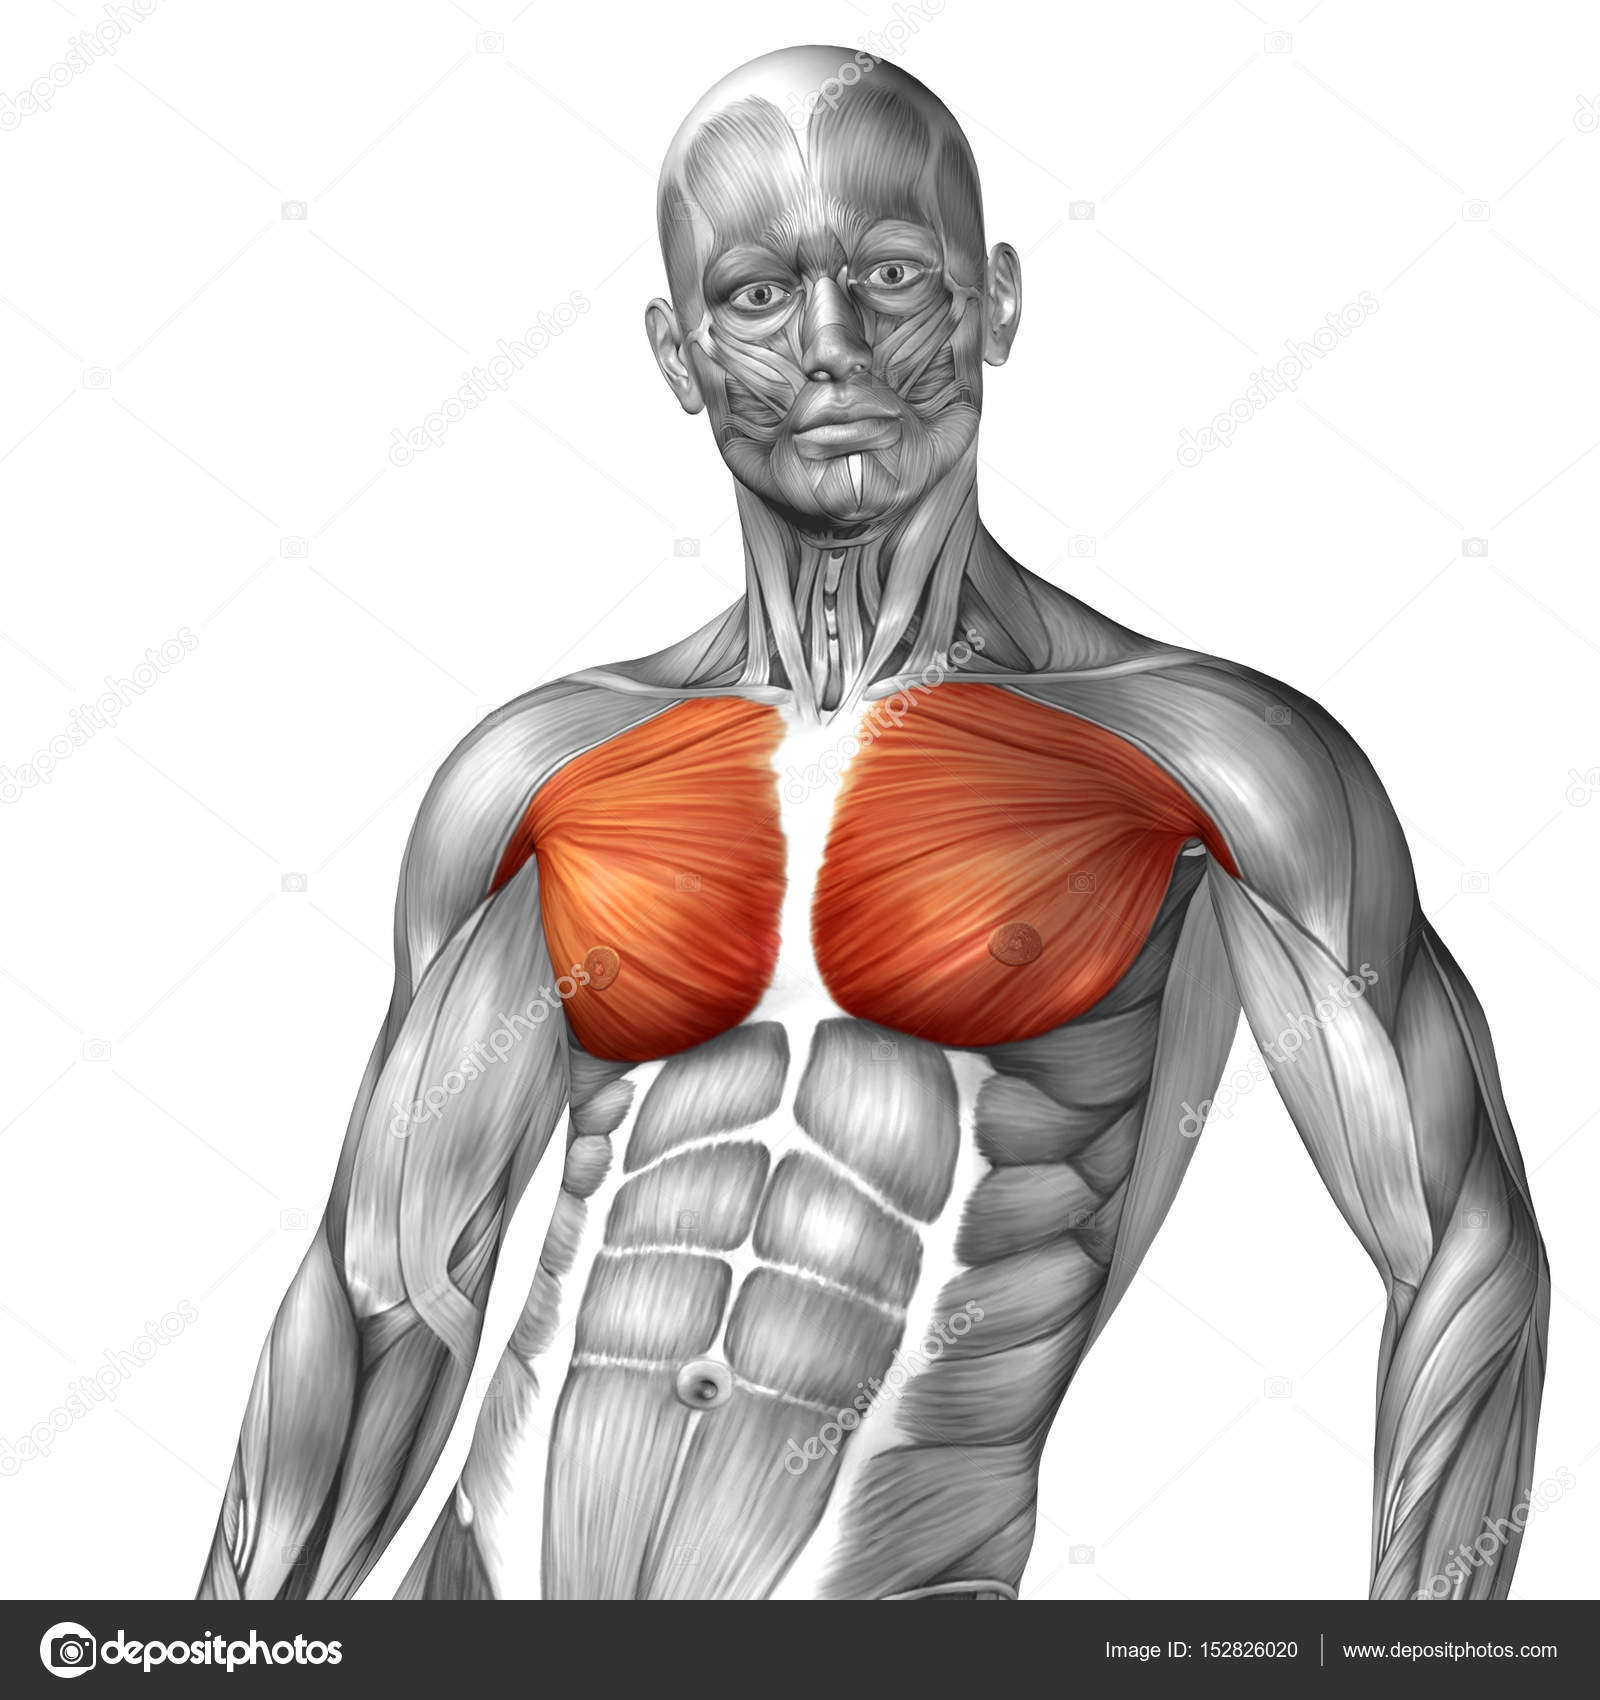 Human Chest Anatomy Stock Photo Design36 152826020